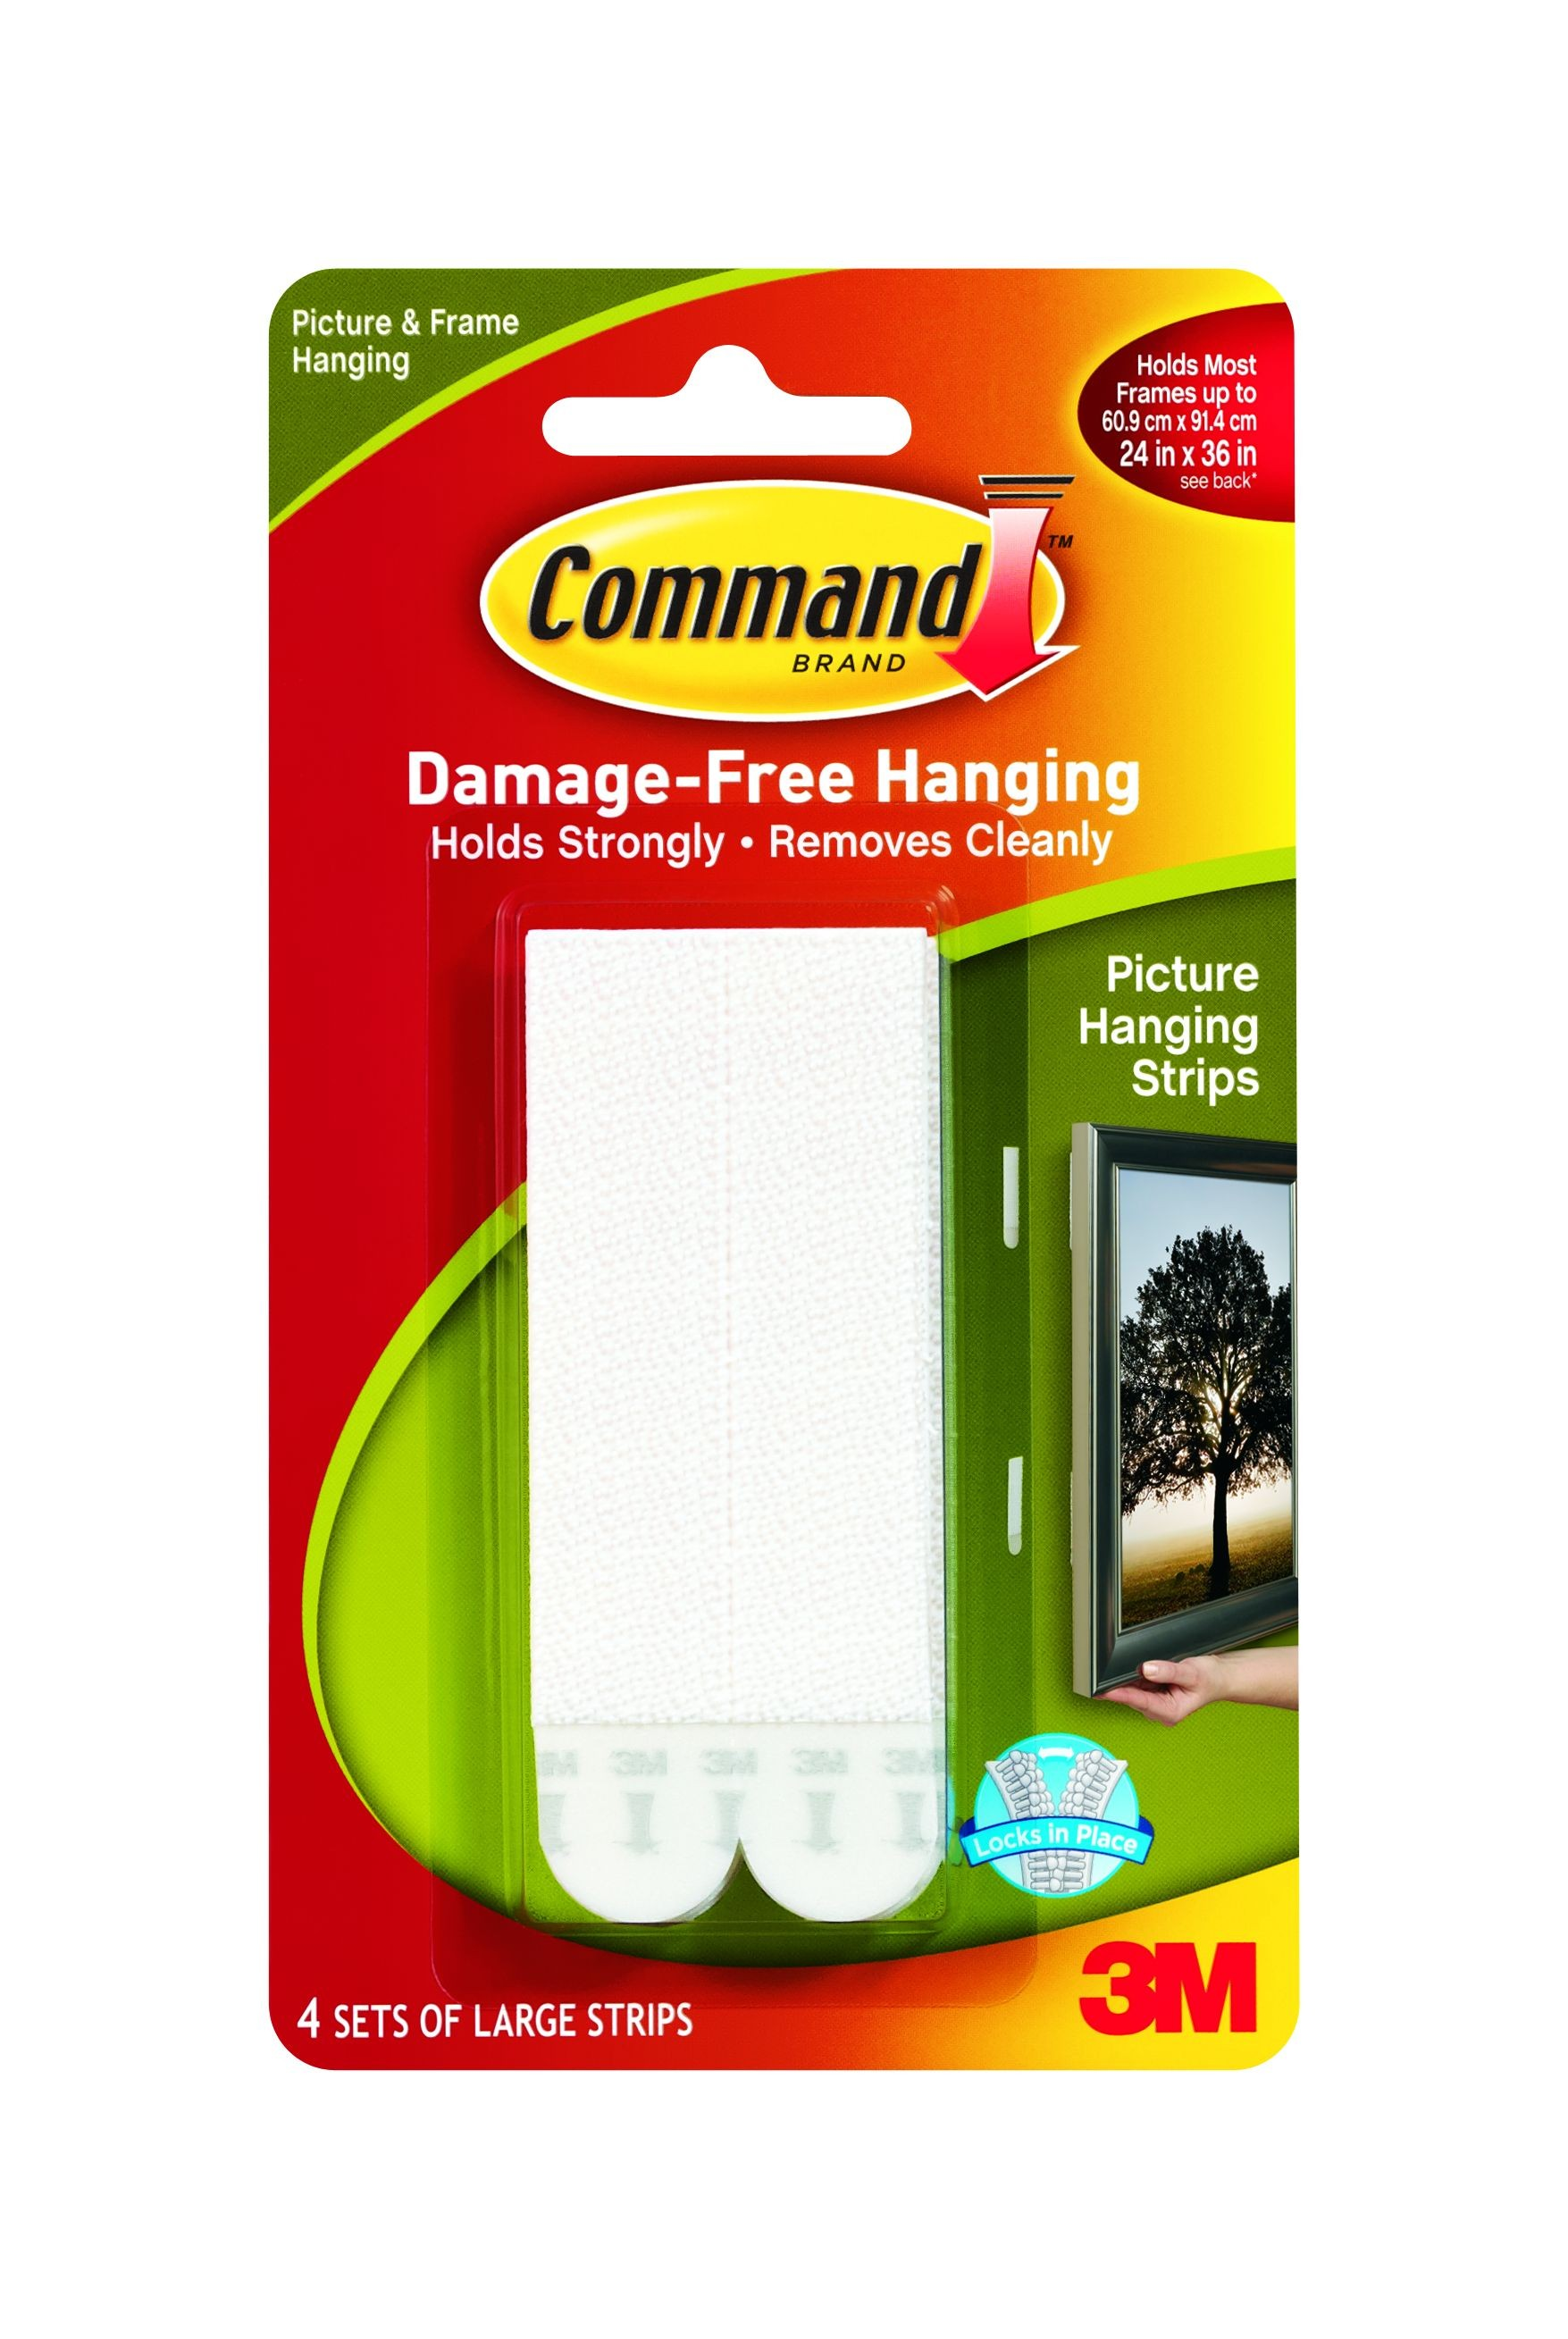 Command Picture Hanging Strips Large 4 Pack From Storage Box